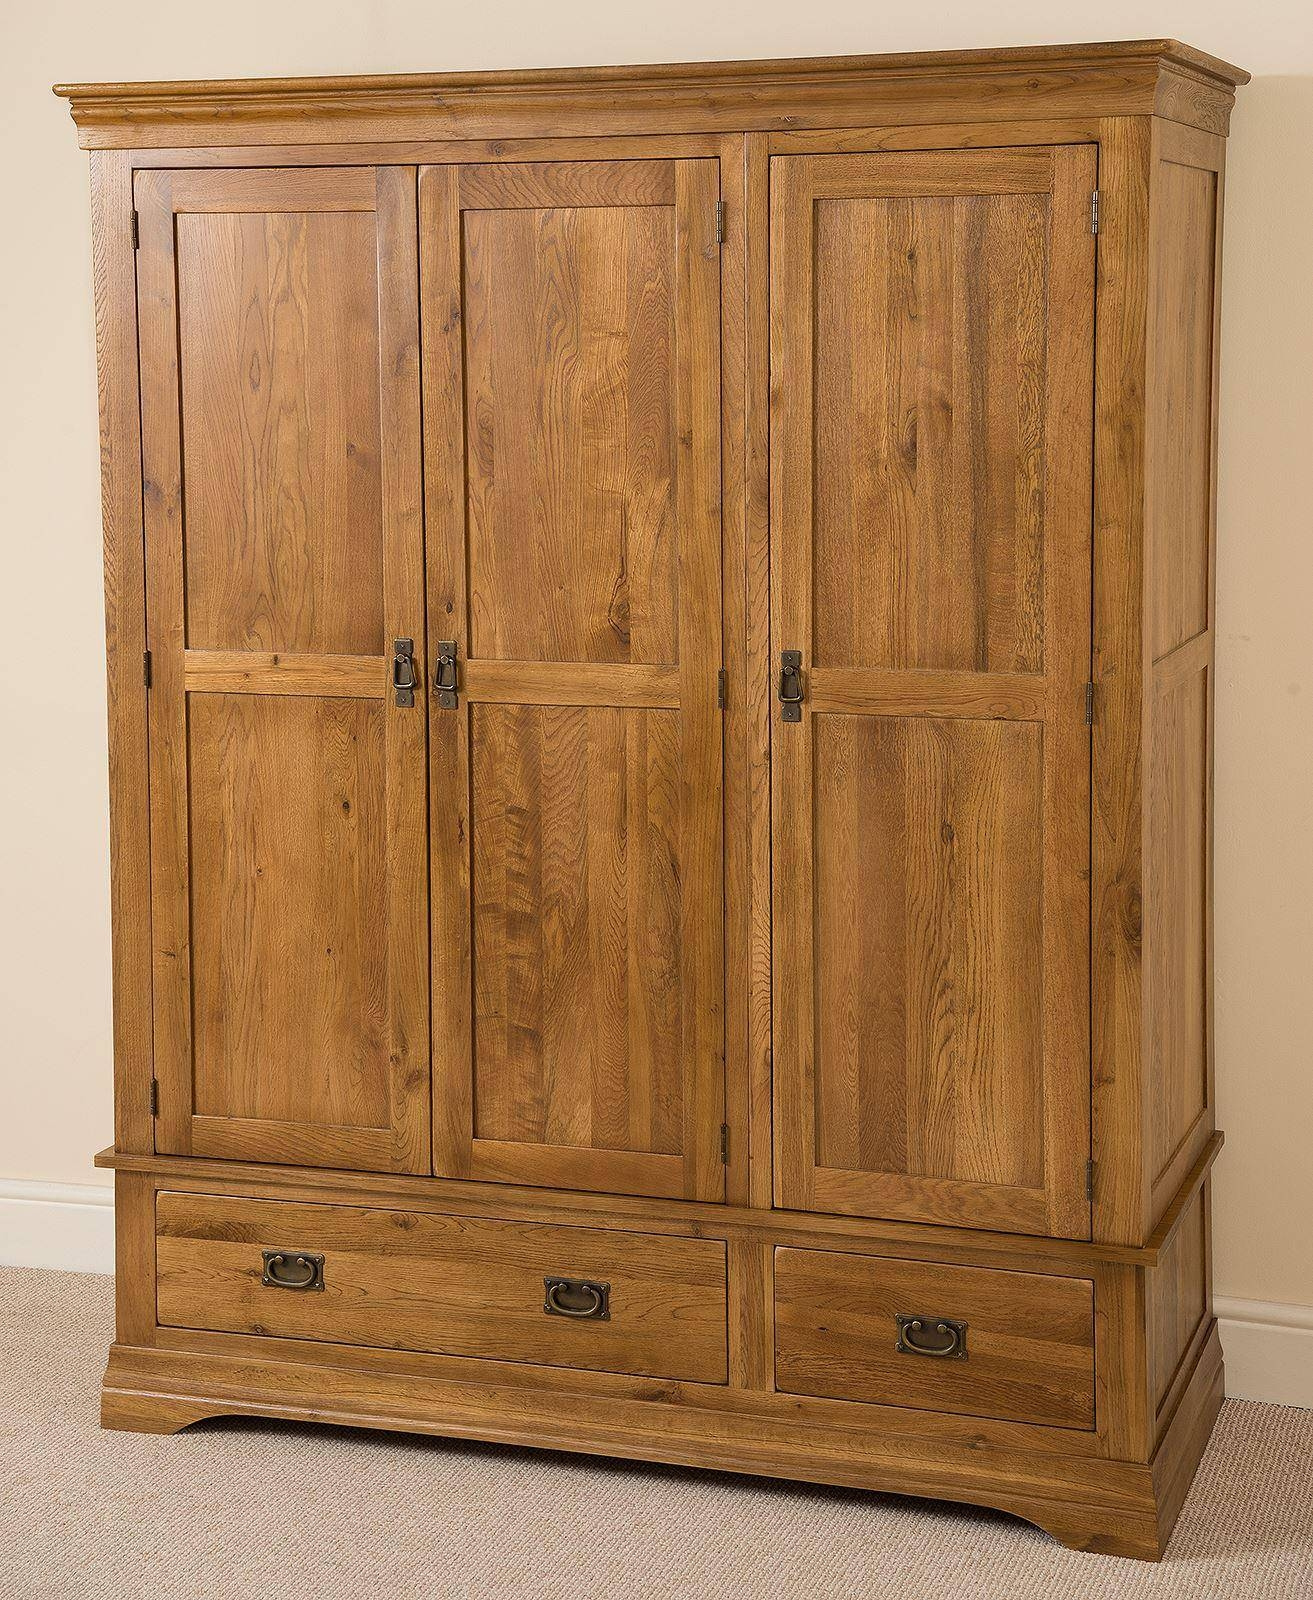 French Chateau Rustic Solid Oak Triple Wardrobe | Oak Furniture King with Cheap Triple Wardrobes (Image 2 of 15)